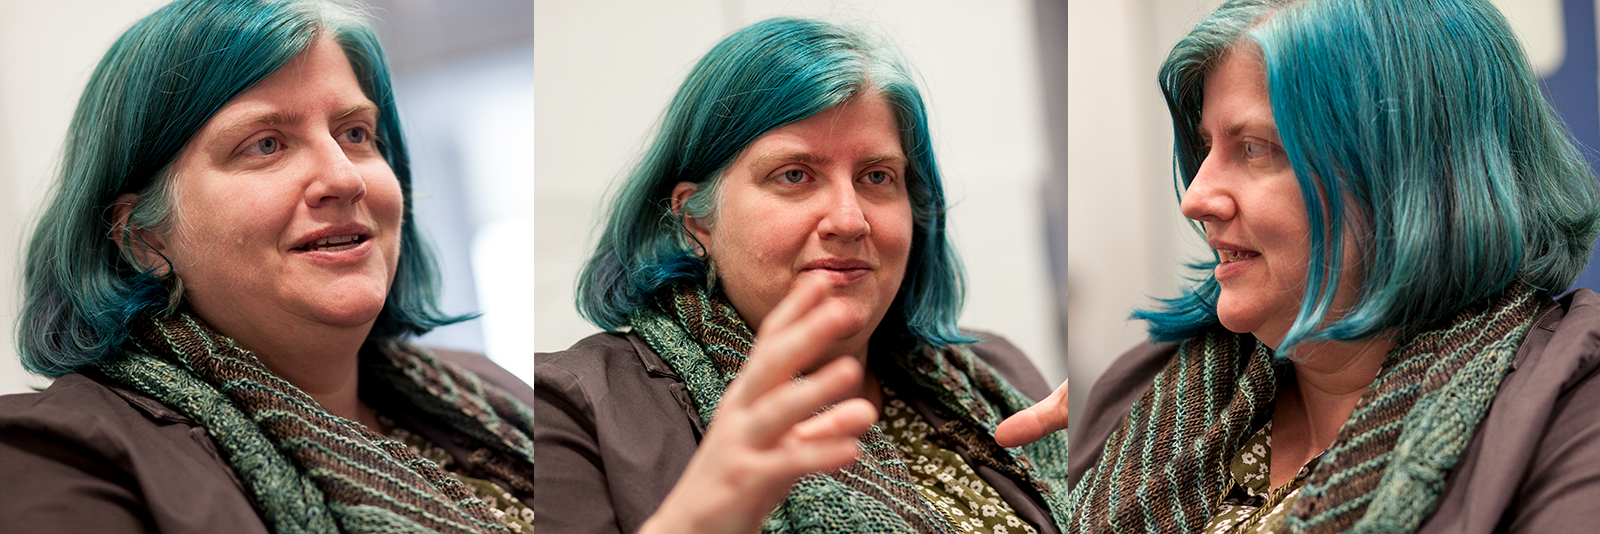 Data scientist and author Cathy O'Neil